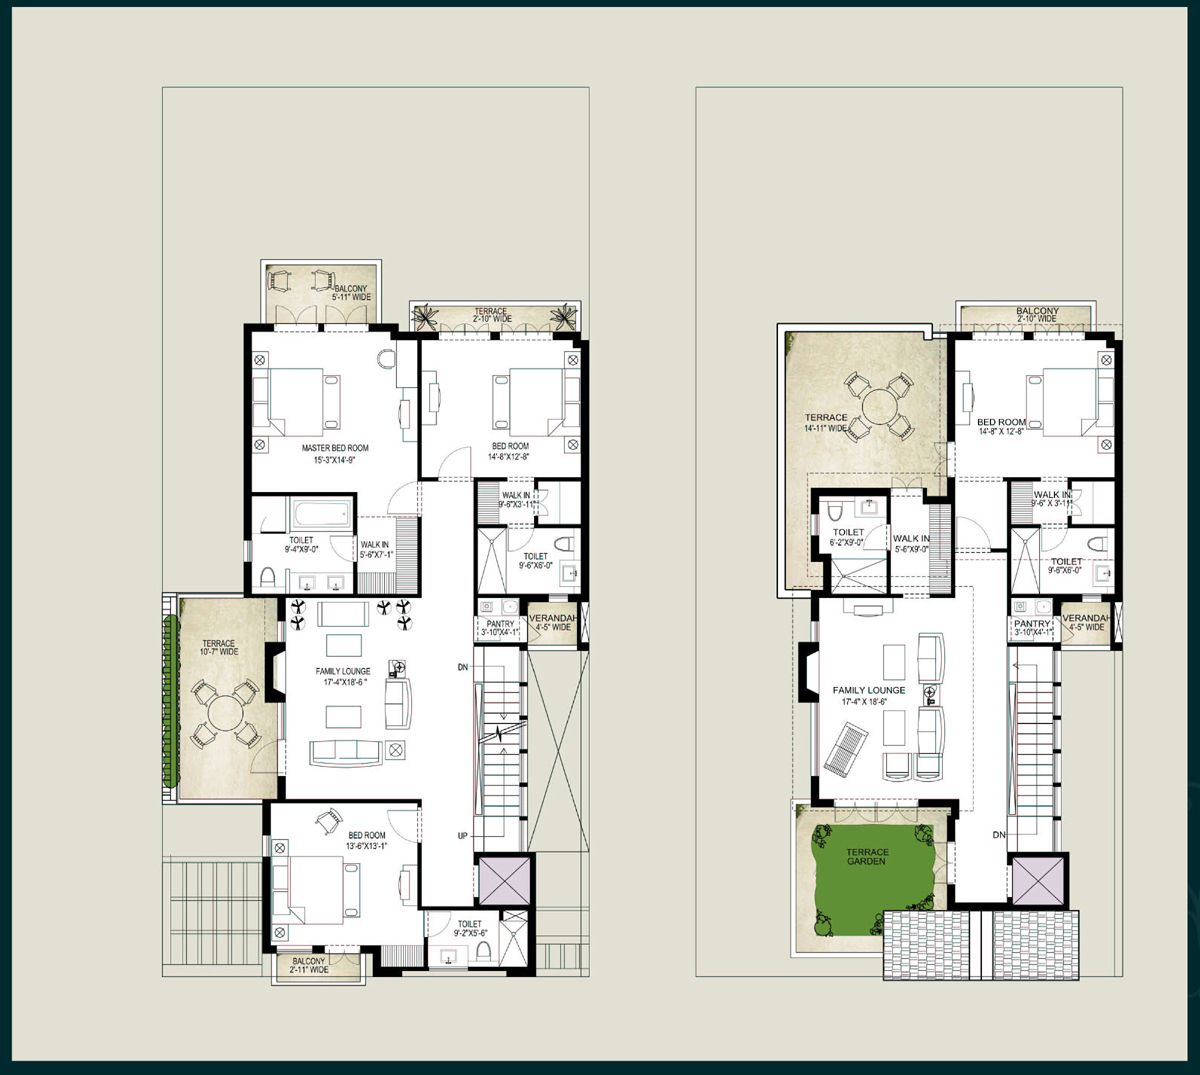 luxury house design floor plans - Unique House Plans